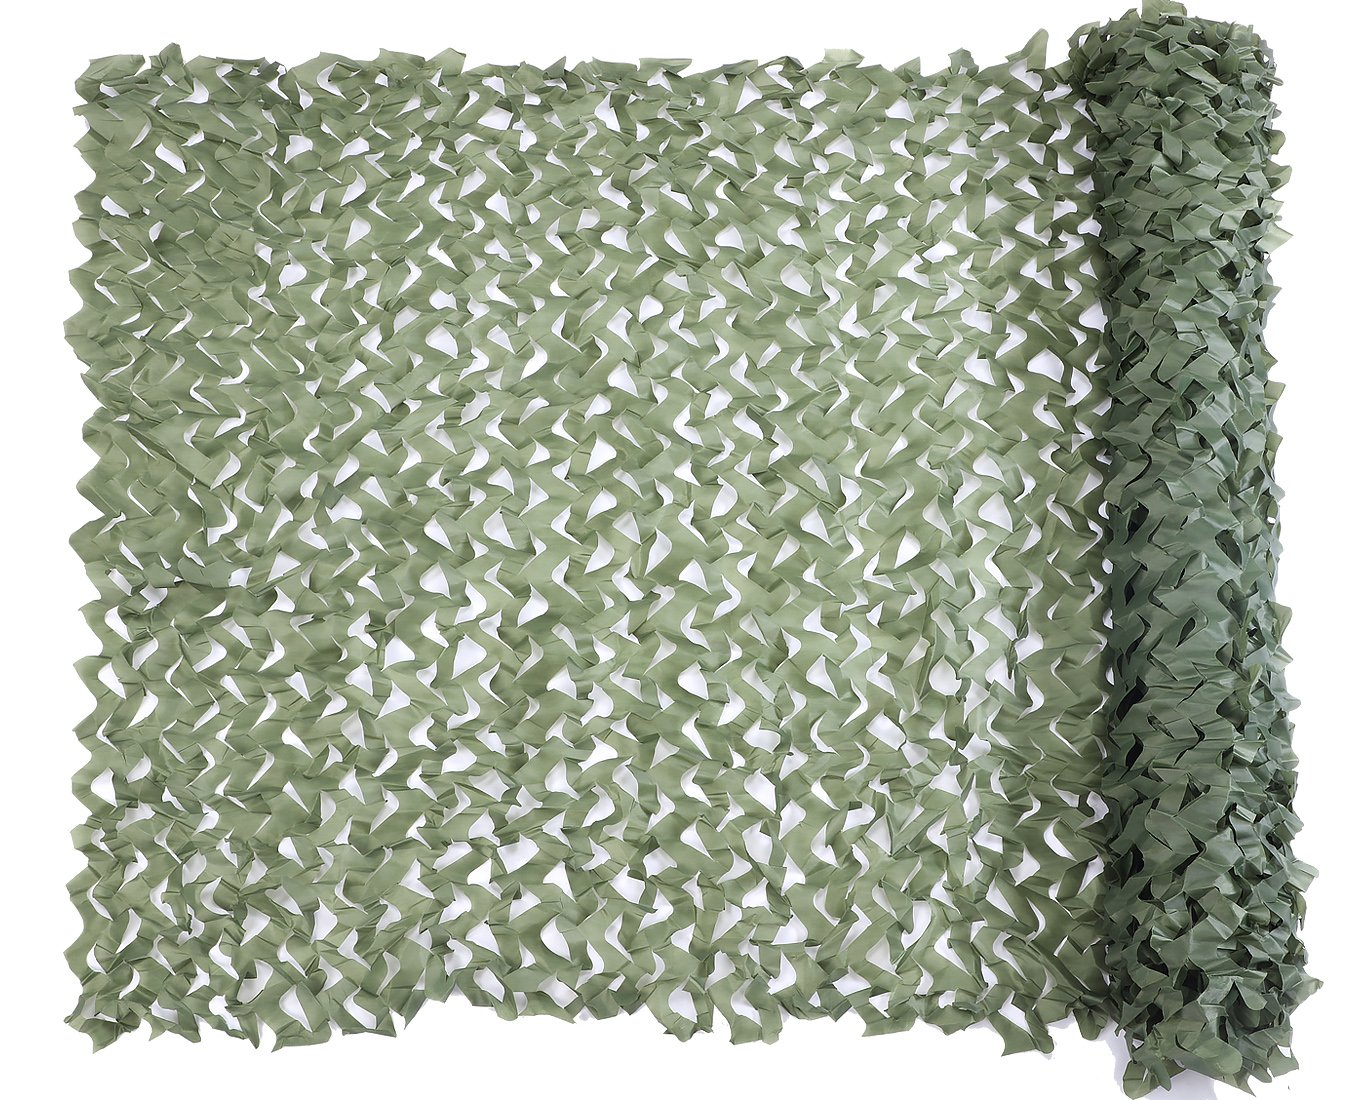 Camo Netting, Camouflage Net Green 5 X 6.56 FT Nets Lightweight Durable for Sunshade Decoration Hunting Blind Shooting